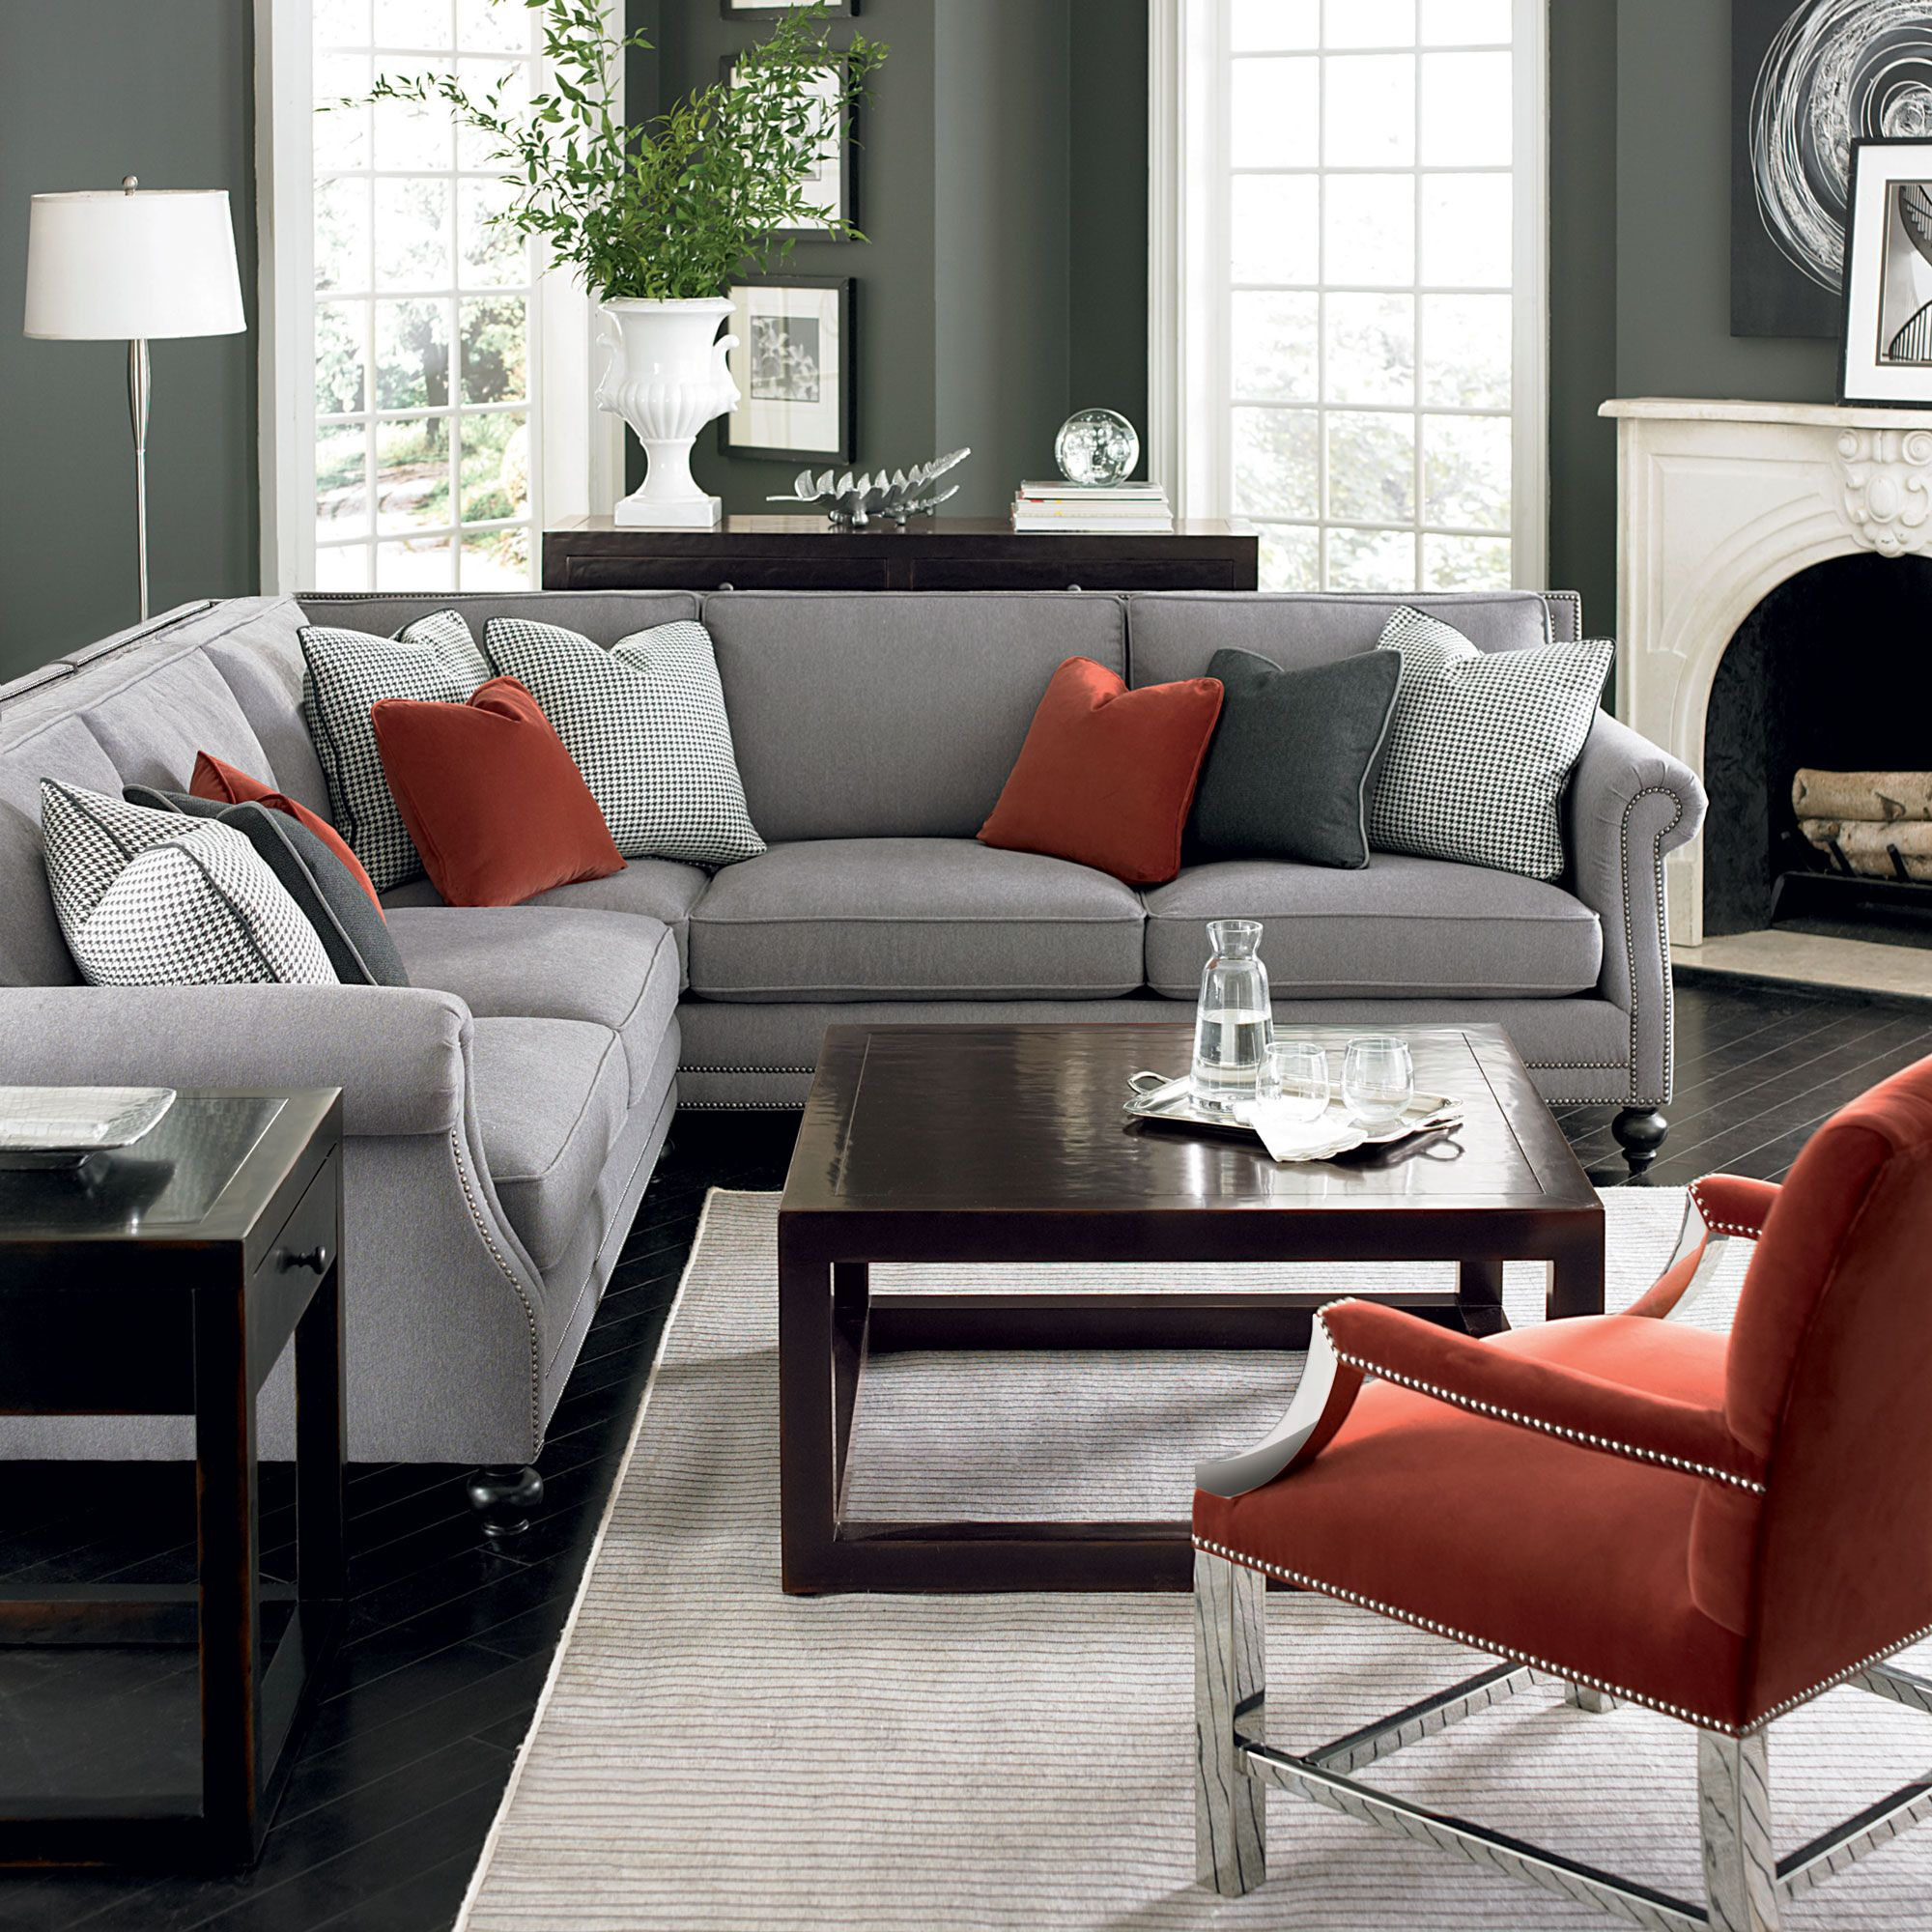 Gray Sectional With A Brown Accent Chair Livivng Room Designs: Silver Sectional Sofa Silver Gray Velvet Sectional Sofa